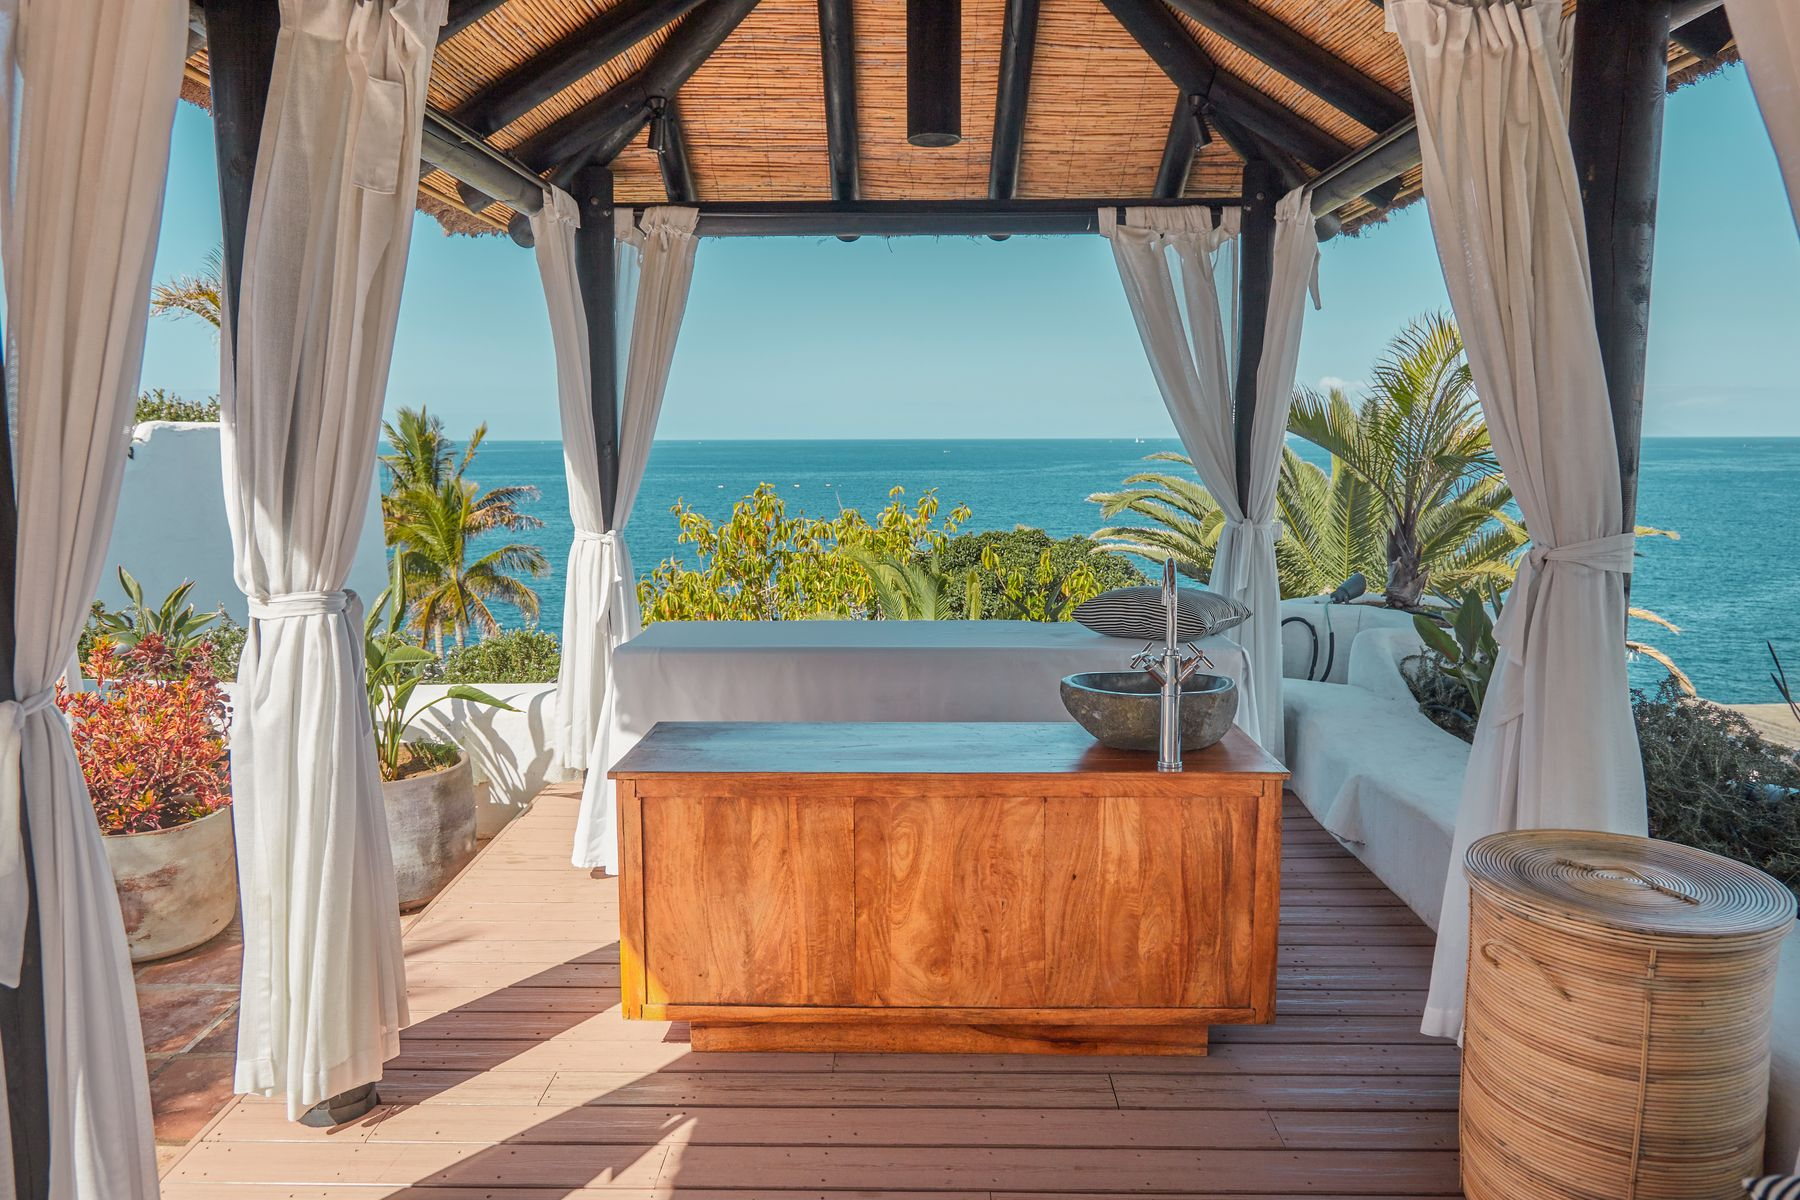 Hotel Jardin Tropical Tenerife is one of the best all-inclusive hotels for couples thanks to its spa, gastronomy and beach cocktails